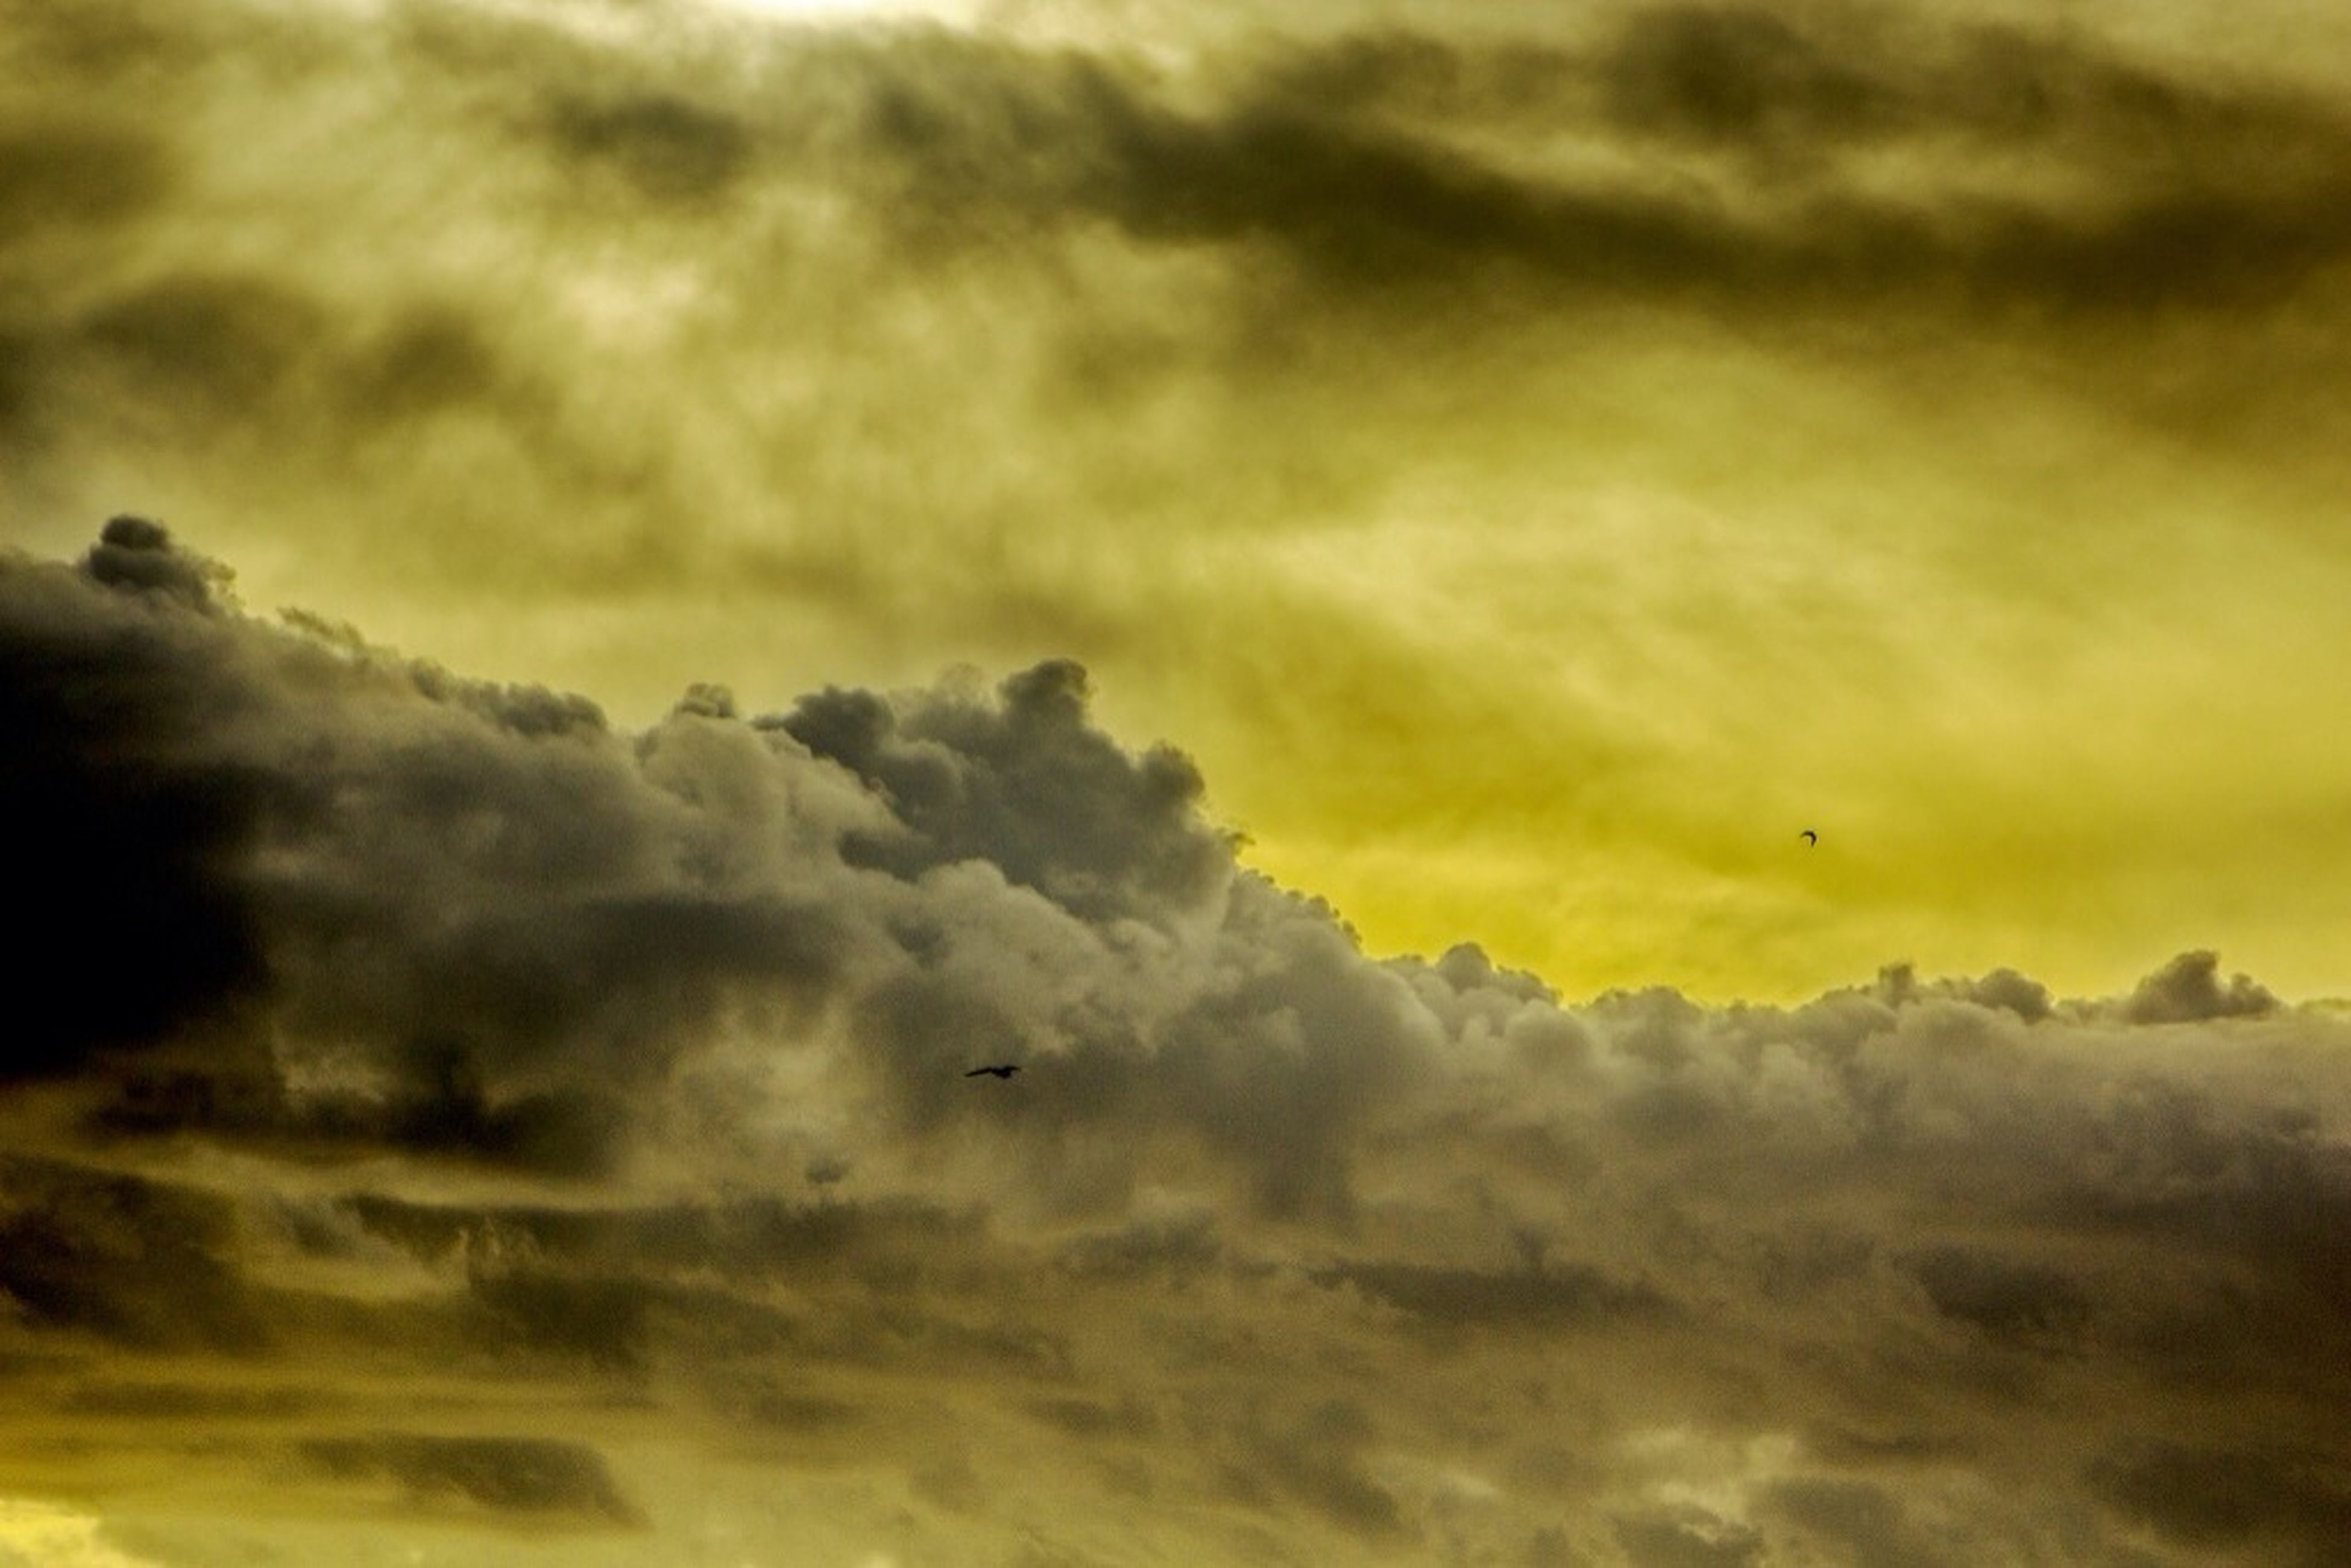 cloud - sky, sunset, sky, cloudy, beauty in nature, scenics, weather, cloudscape, nature, tranquility, tranquil scene, dramatic sky, orange color, backgrounds, overcast, idyllic, full frame, sky only, cloud, low angle view